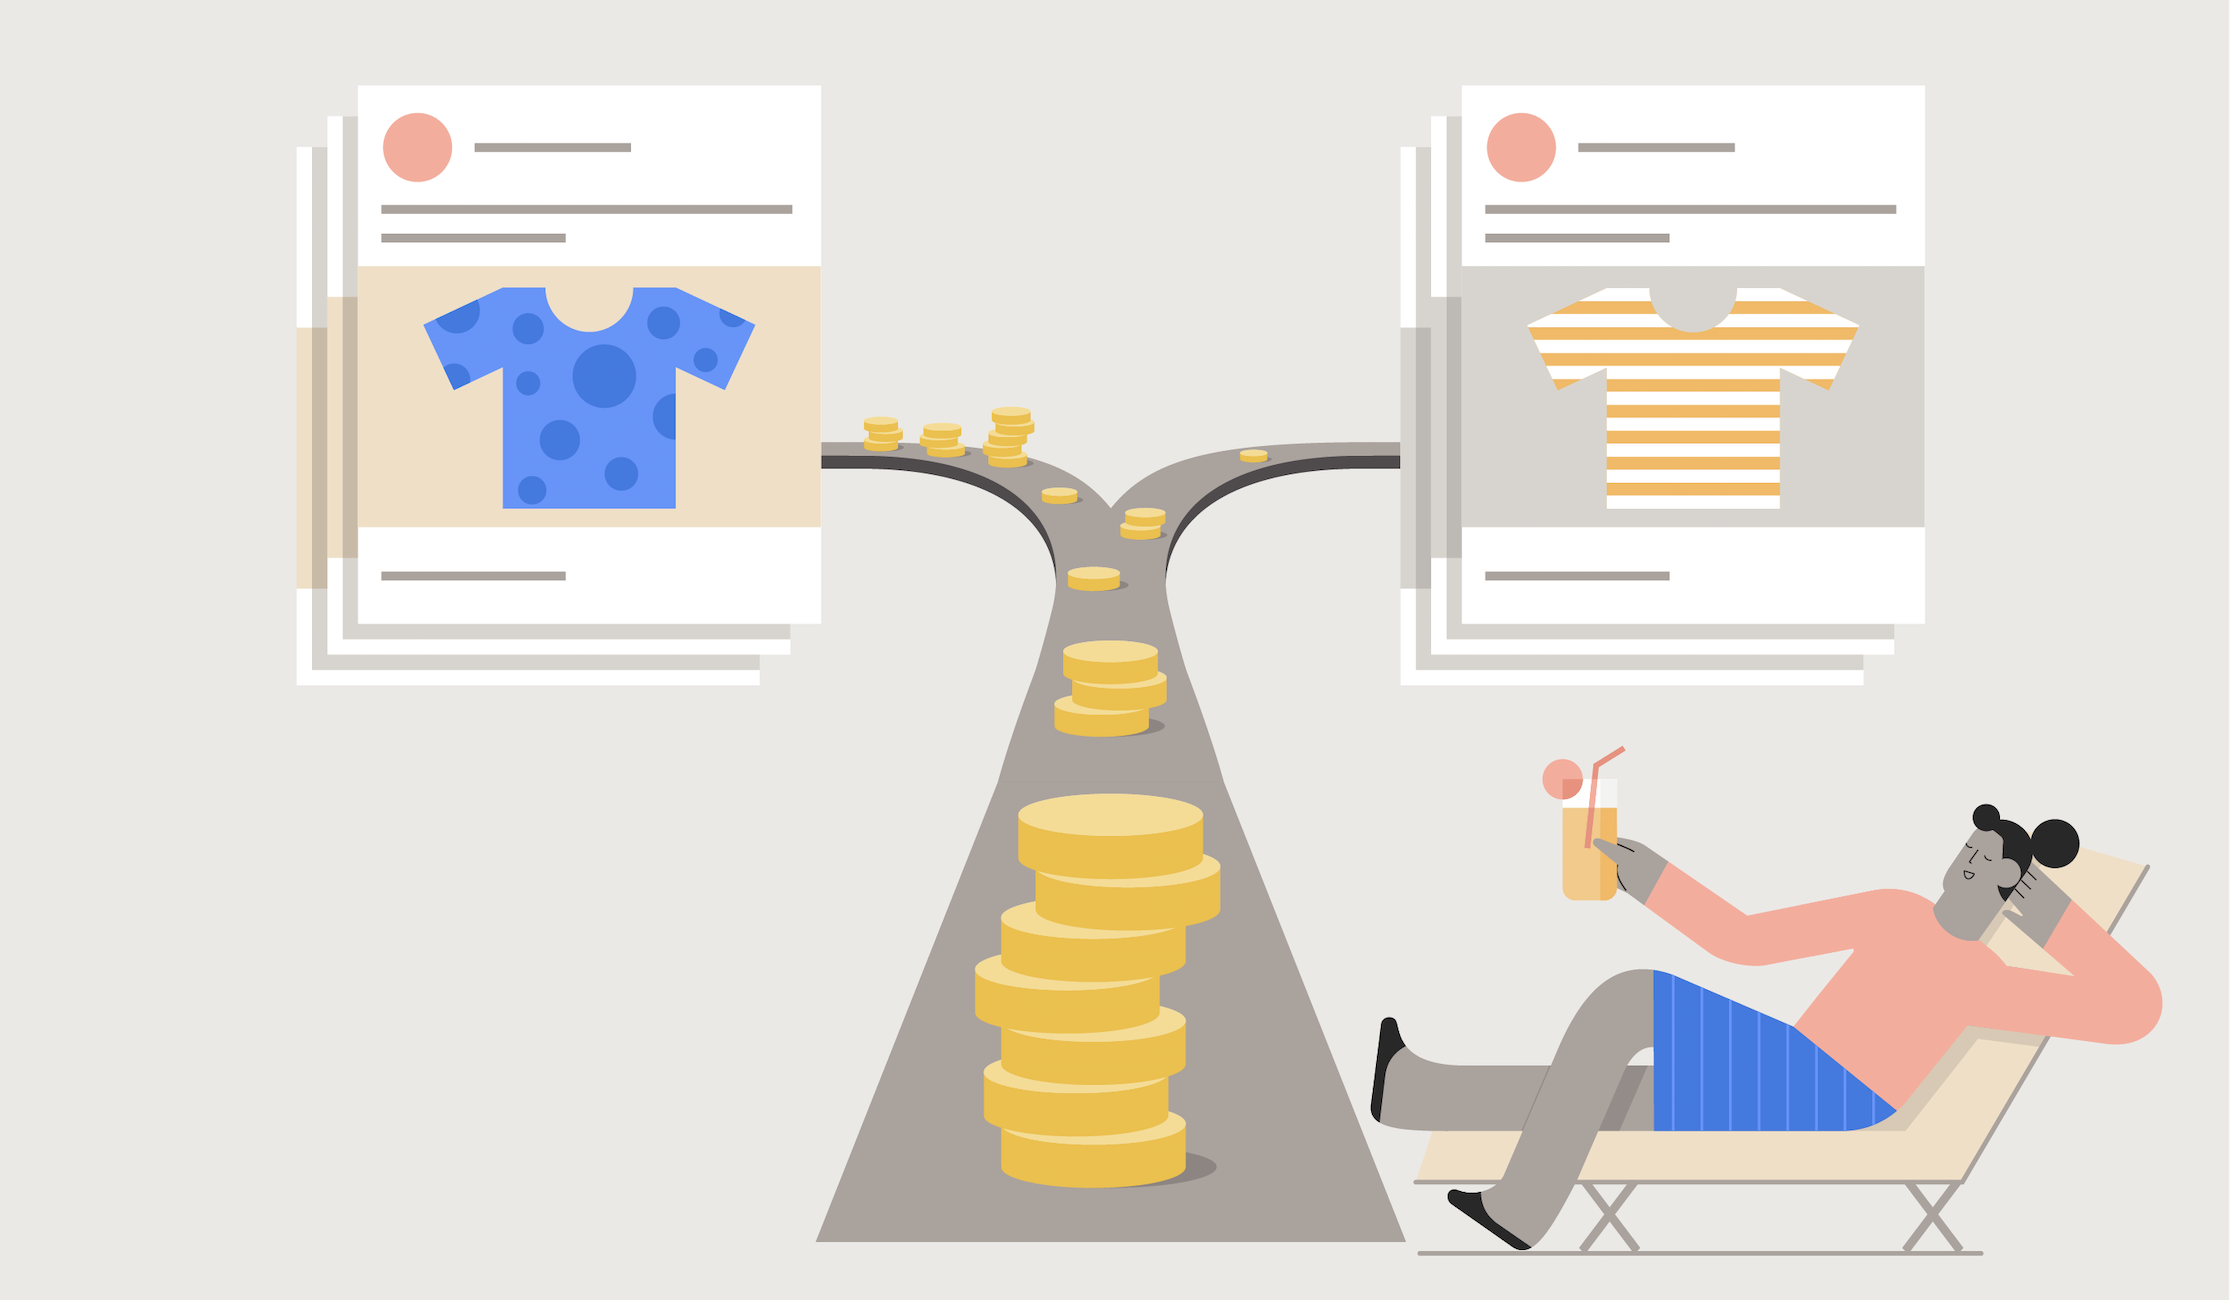 After September 2019, you can still control spending at the ad set level by using ad set spend limits. If you set a minimum spend limit, Facebook will aim to spend that amount. If you set a maximum spend limit, Facebook will not exceed that amount.